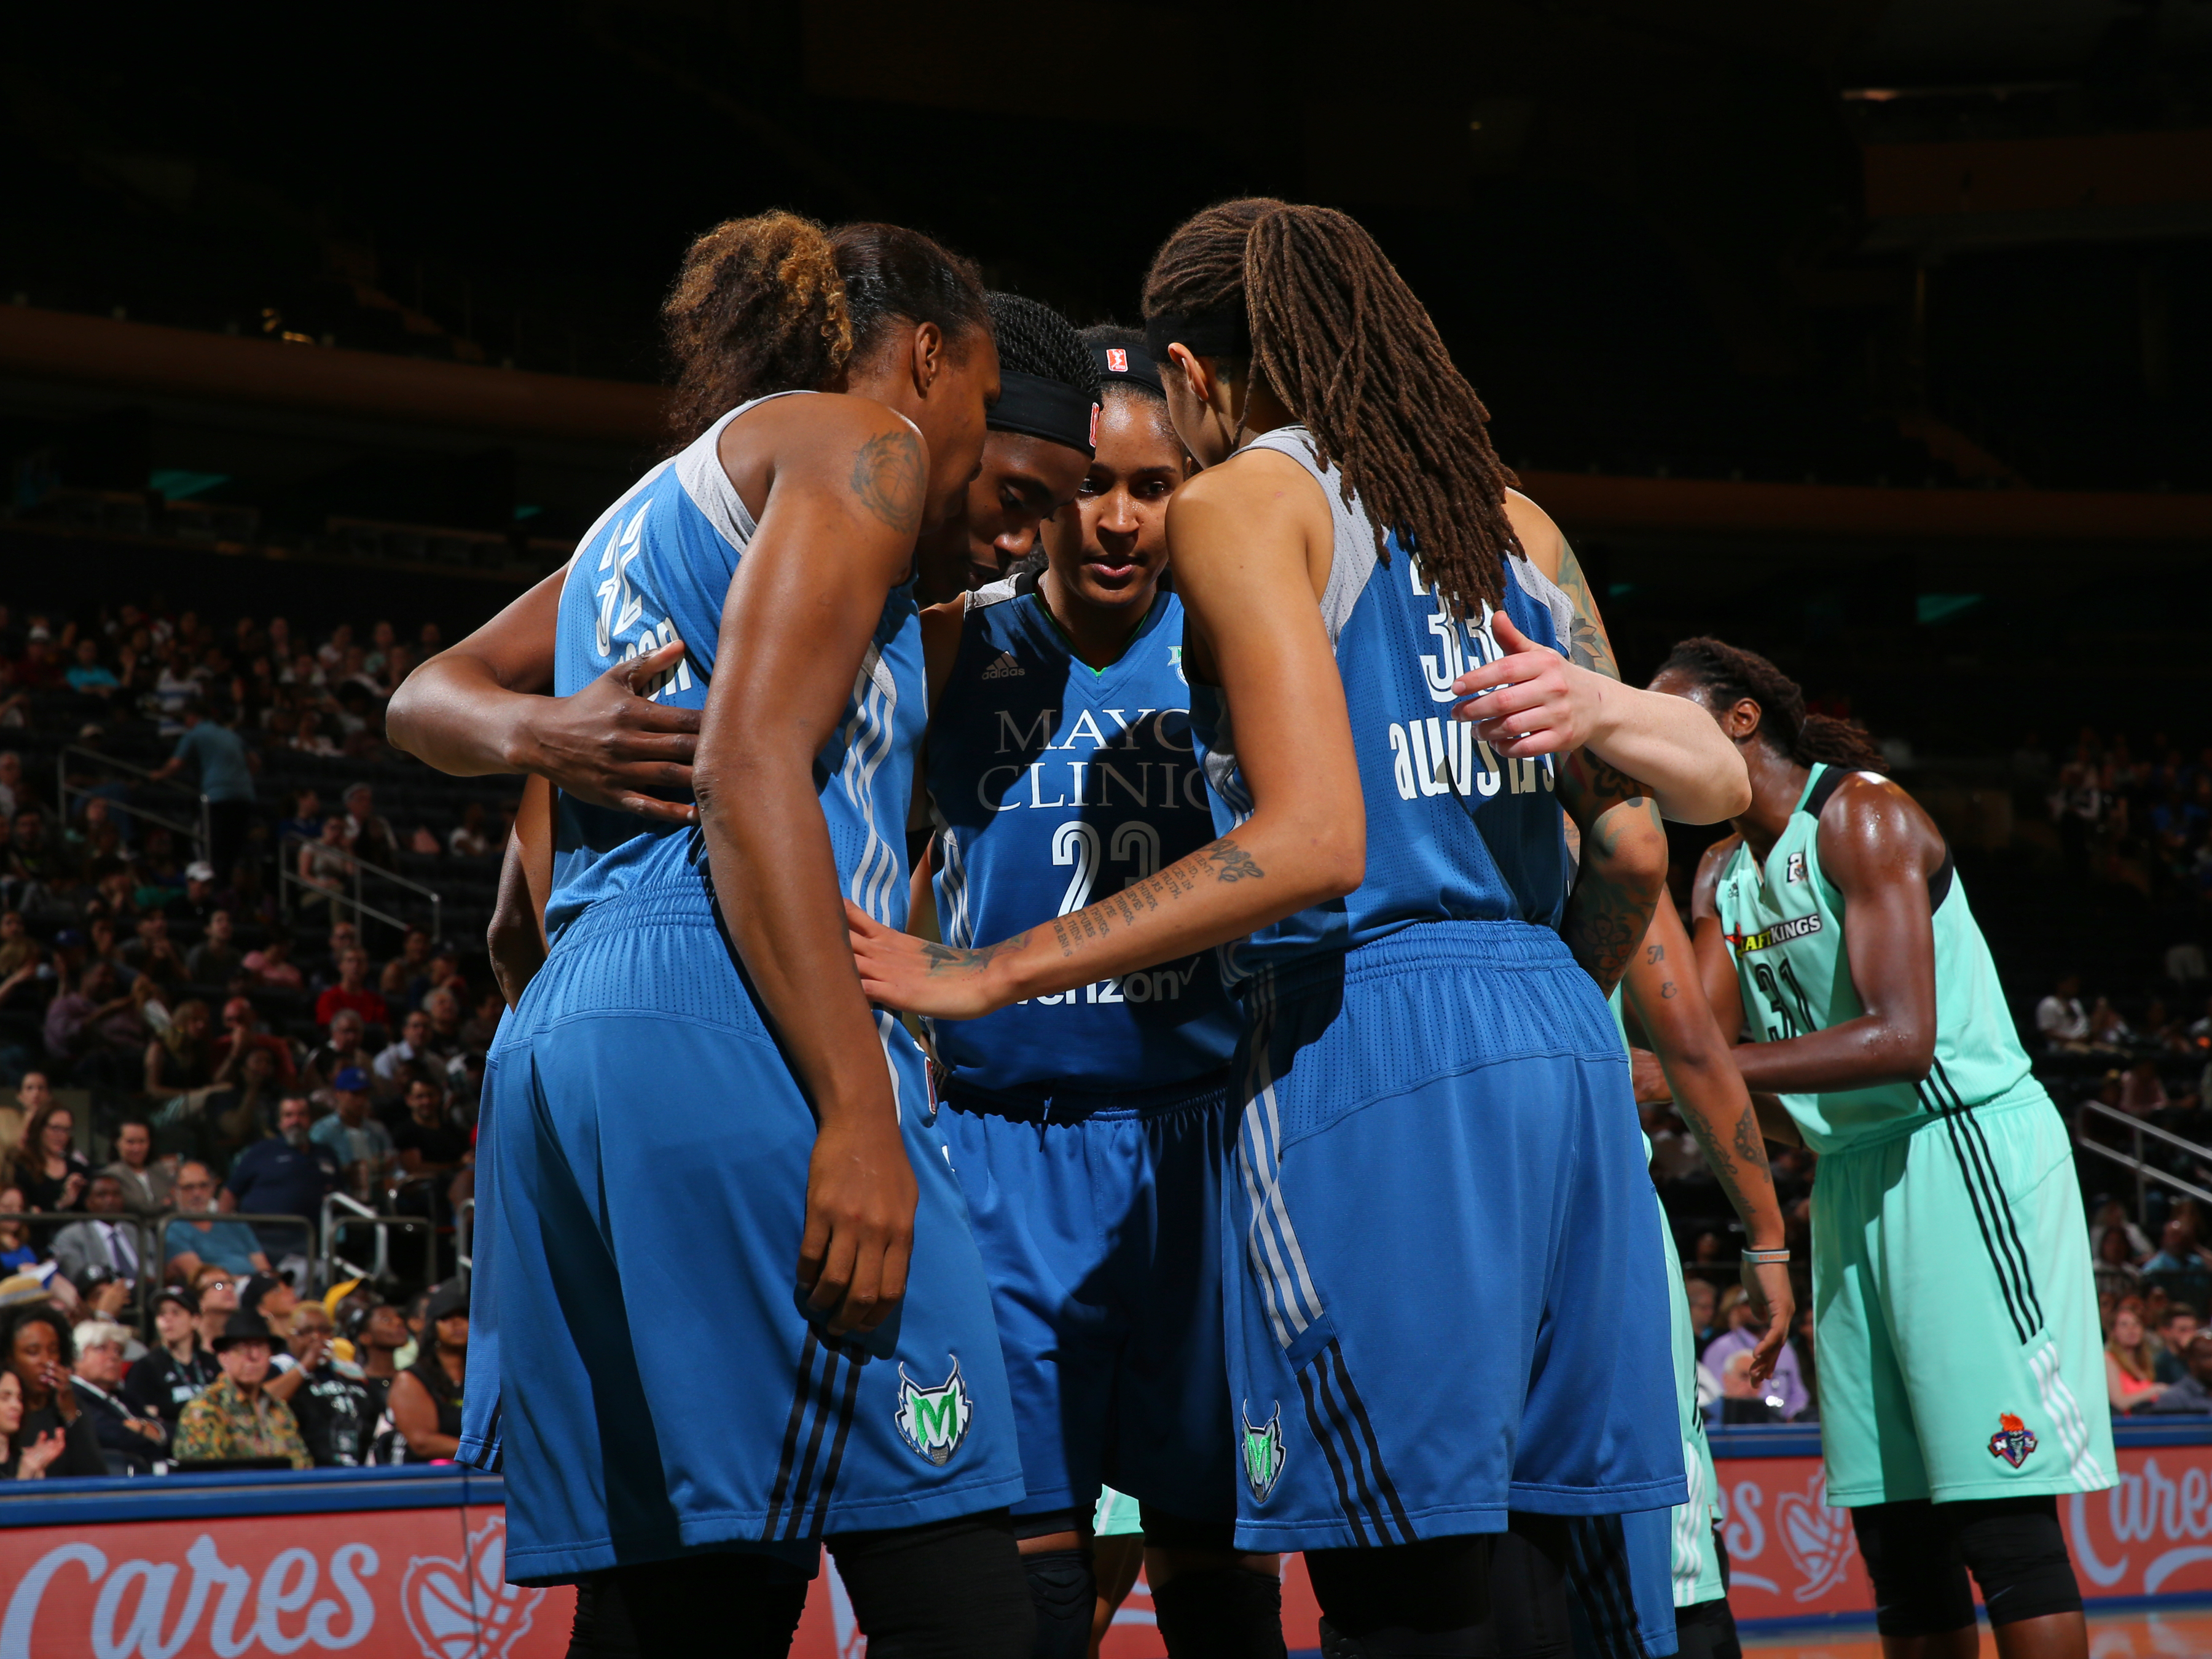 NEW YORK, NY - MAY 31:  The Minnesota Lynx huddle during the game against the New York Liberty during the game on May 31, 2016 at Madison Square Garden in New York, New York. NOTE TO USER: User expressly acknowledges and agrees that, by downloading and or using this Photograph, user is consenting to the terms and conditions of the Getty Images License Agreement. Mandatory Copyright Notice: Copyright 2016 NBAE (Photo by Mike Stobe/NBAE via Getty Images)